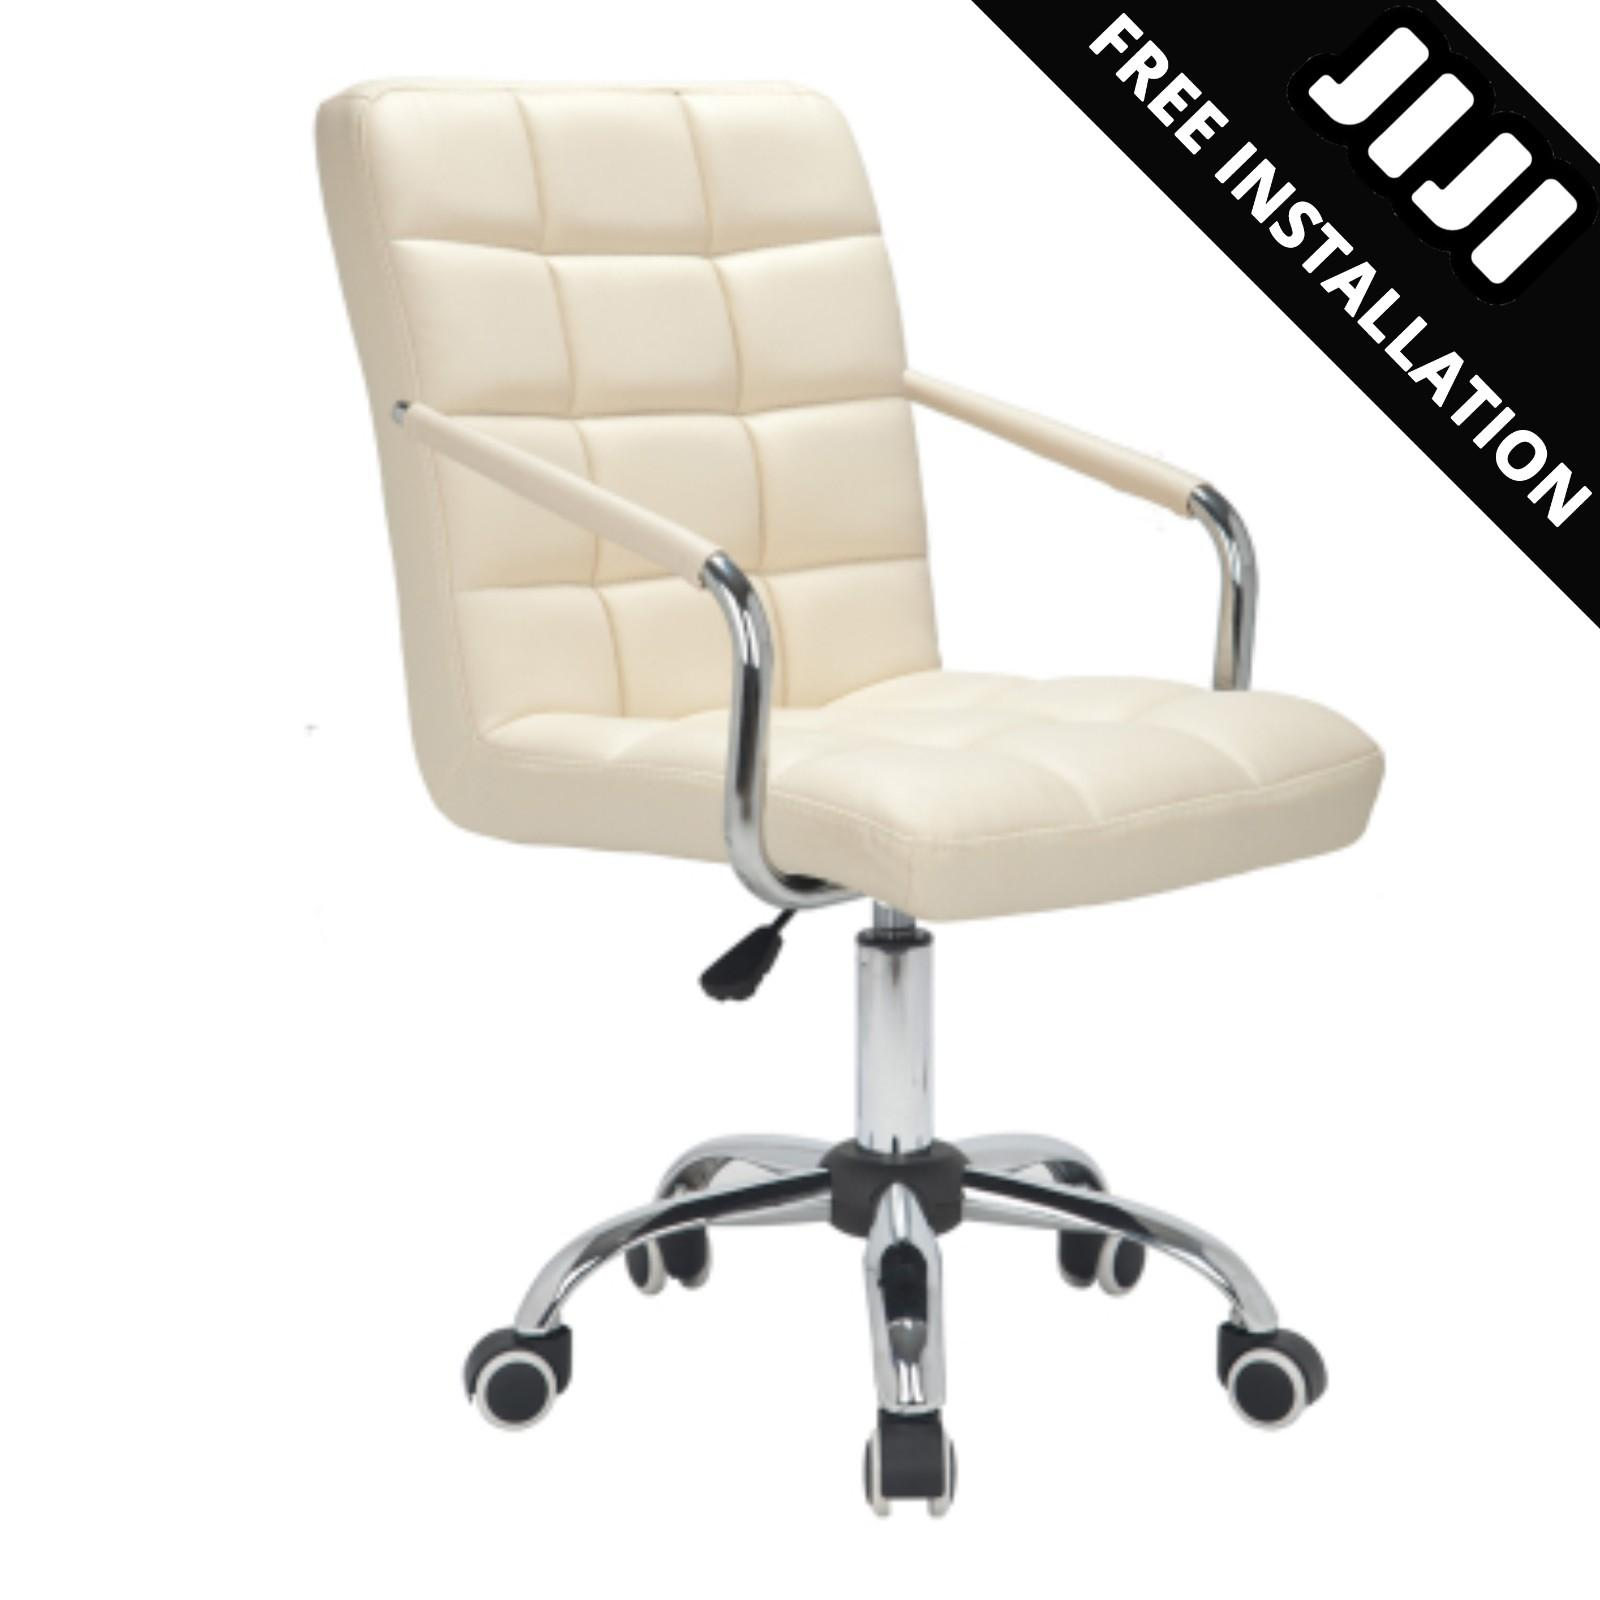 JIJI Supervisor Office Chair 12 Cubes (Free Installation) - Office chair/Study chair/Gaming chair/Ergonomic/ Free 12 Months Warranty (SG) Singapore